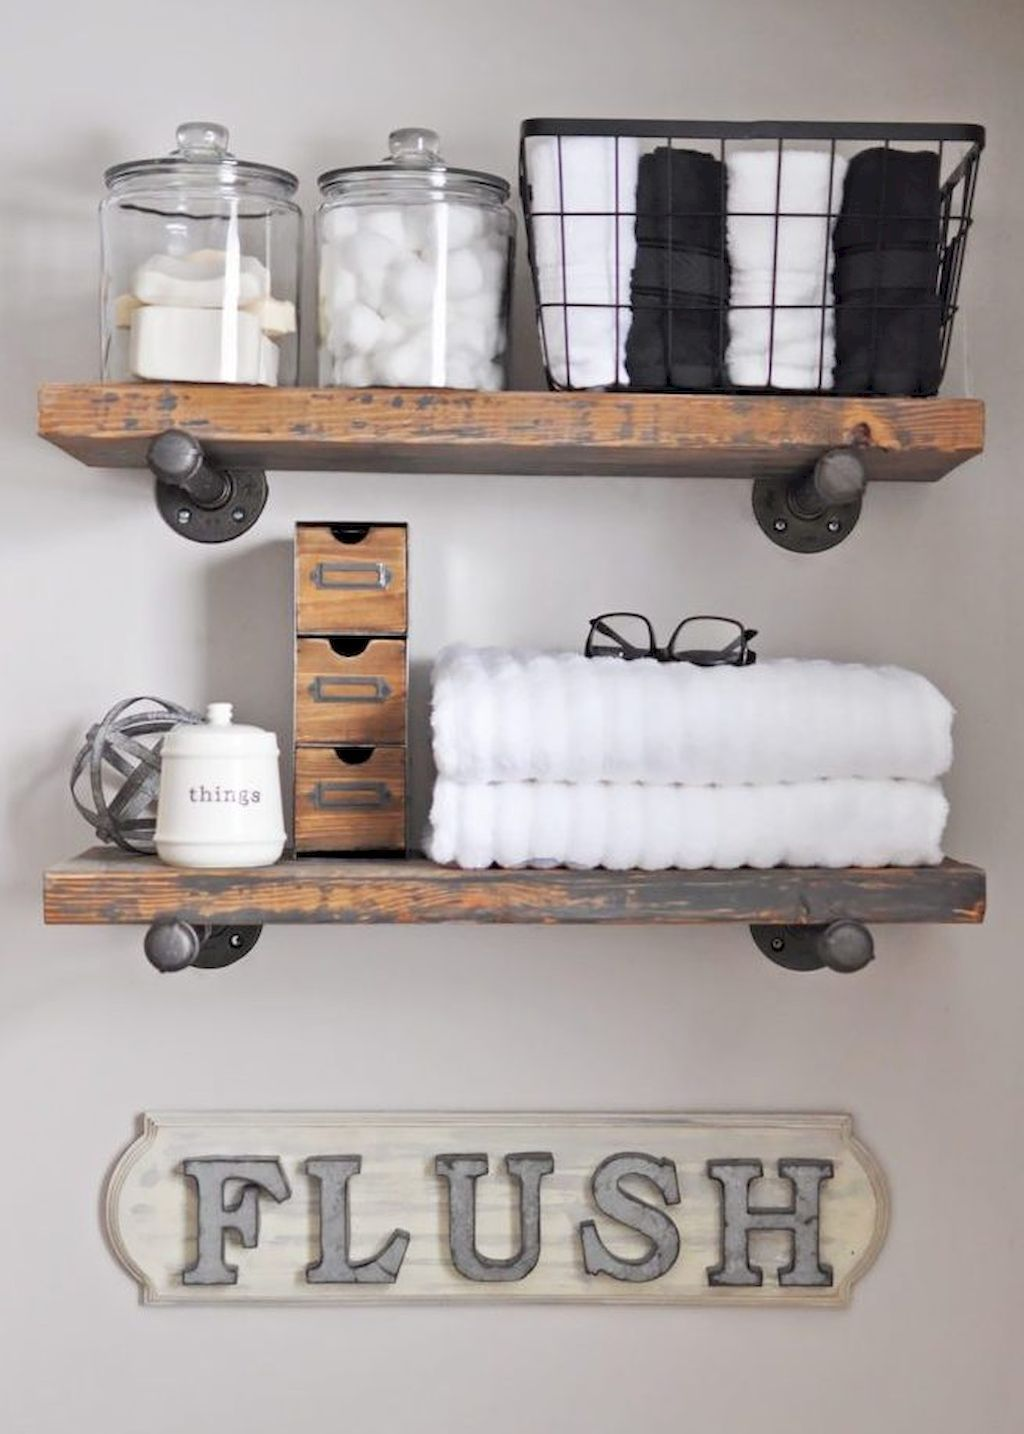 55 DIY Rustic Home Decor Ideas on A Budget | Budgeting, Rustic ...